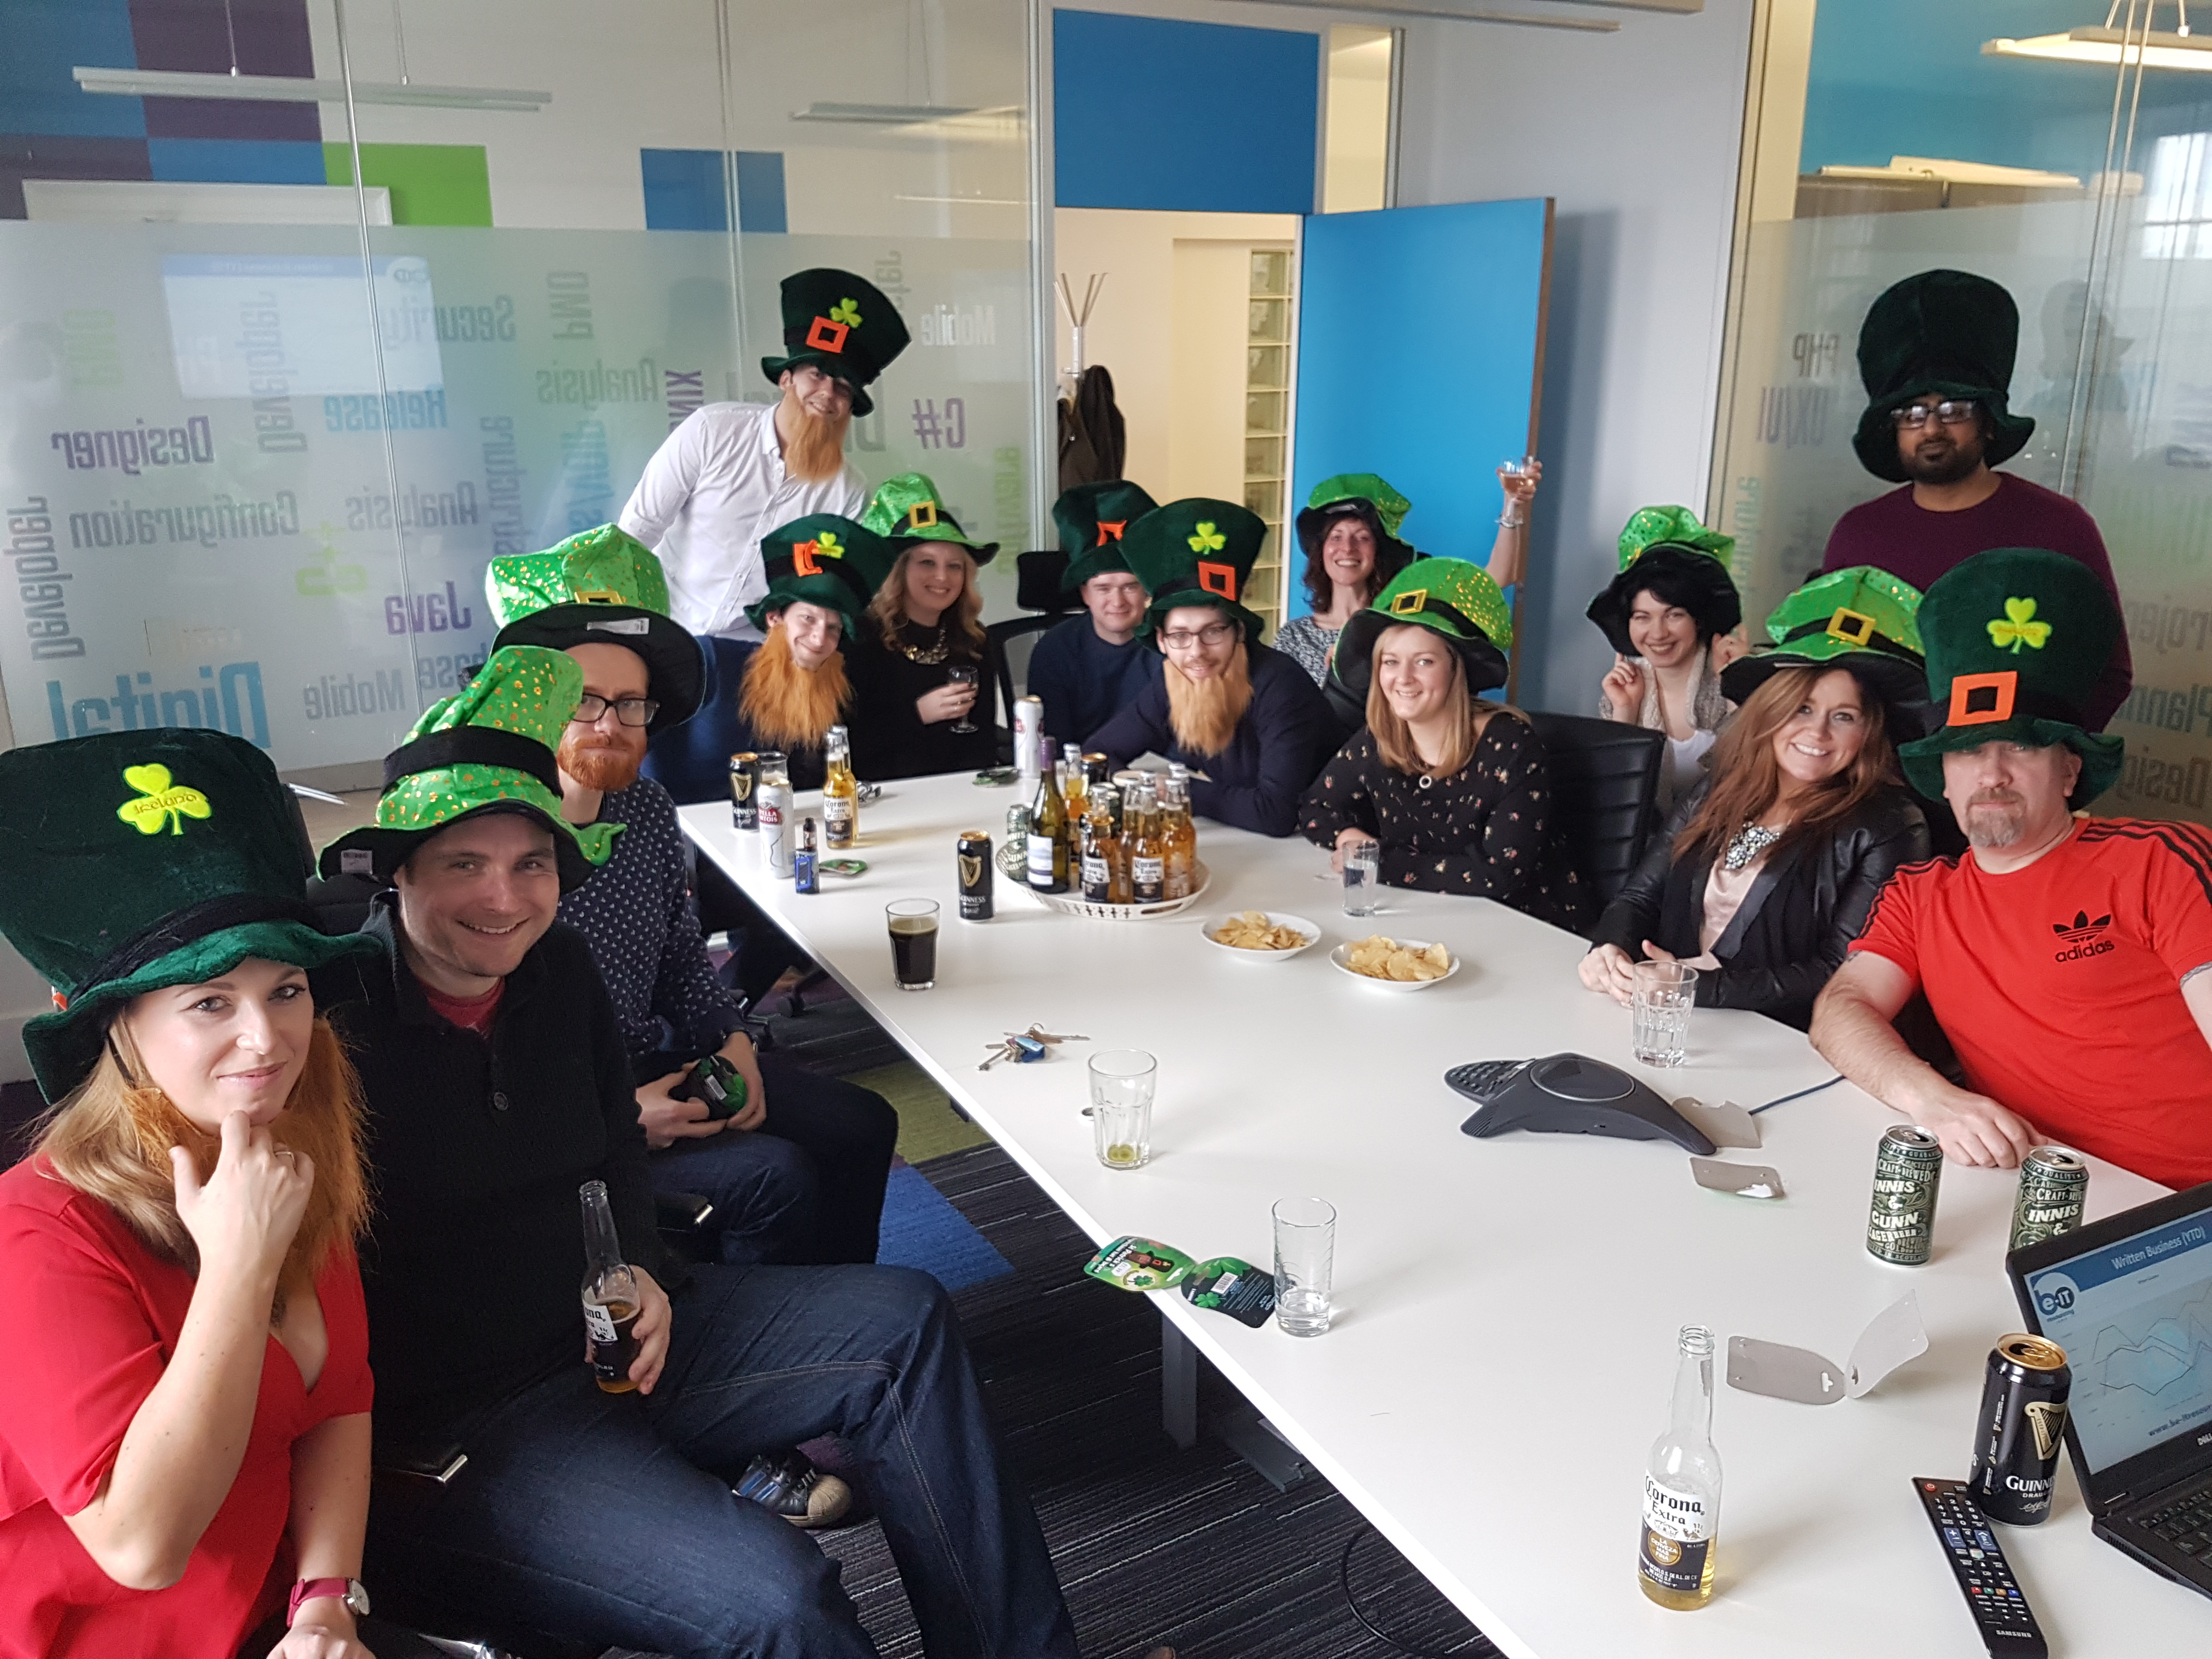 Be-IT team on Paddy's Day.